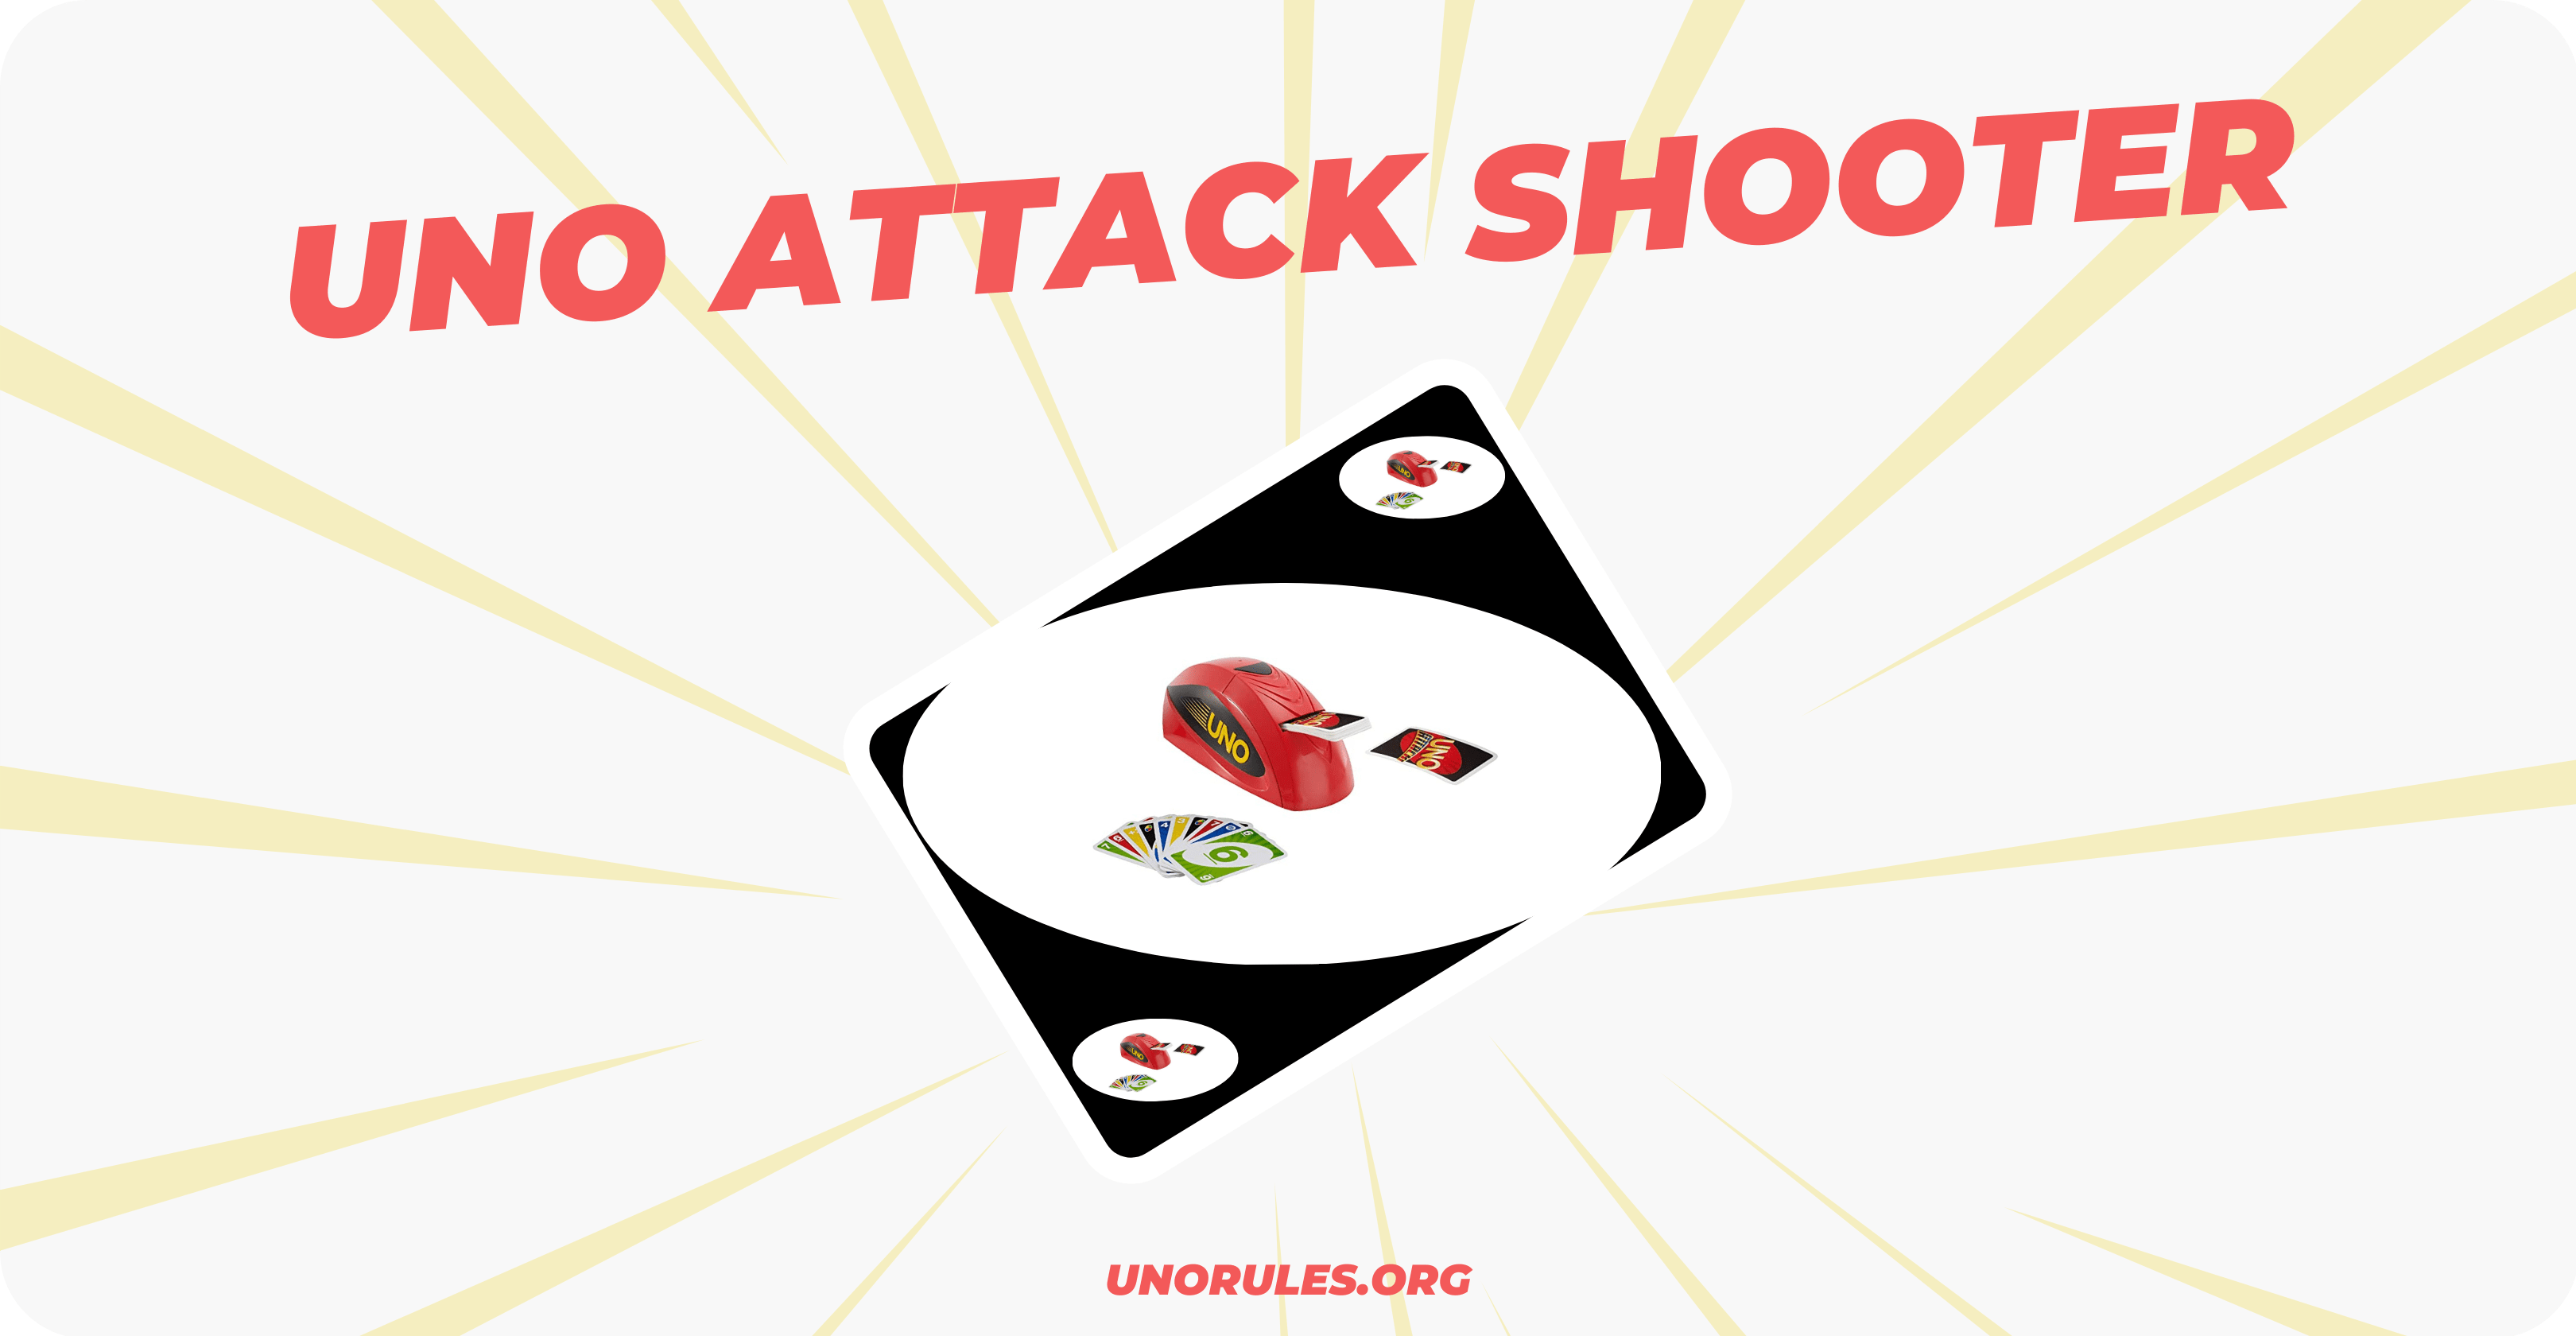 The Uno Attack shooter